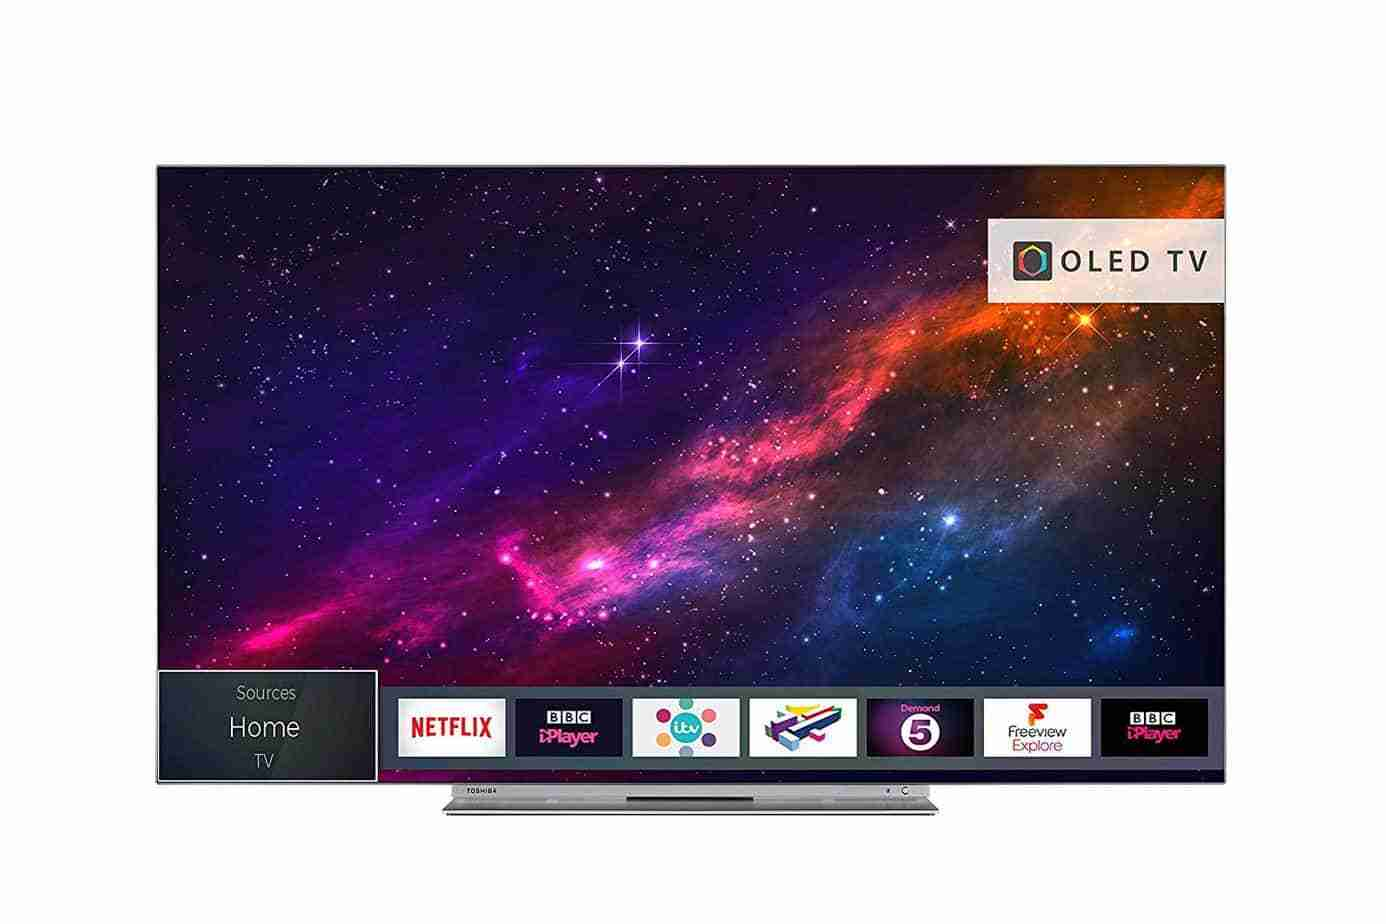 Best Toshiba TV in 2019